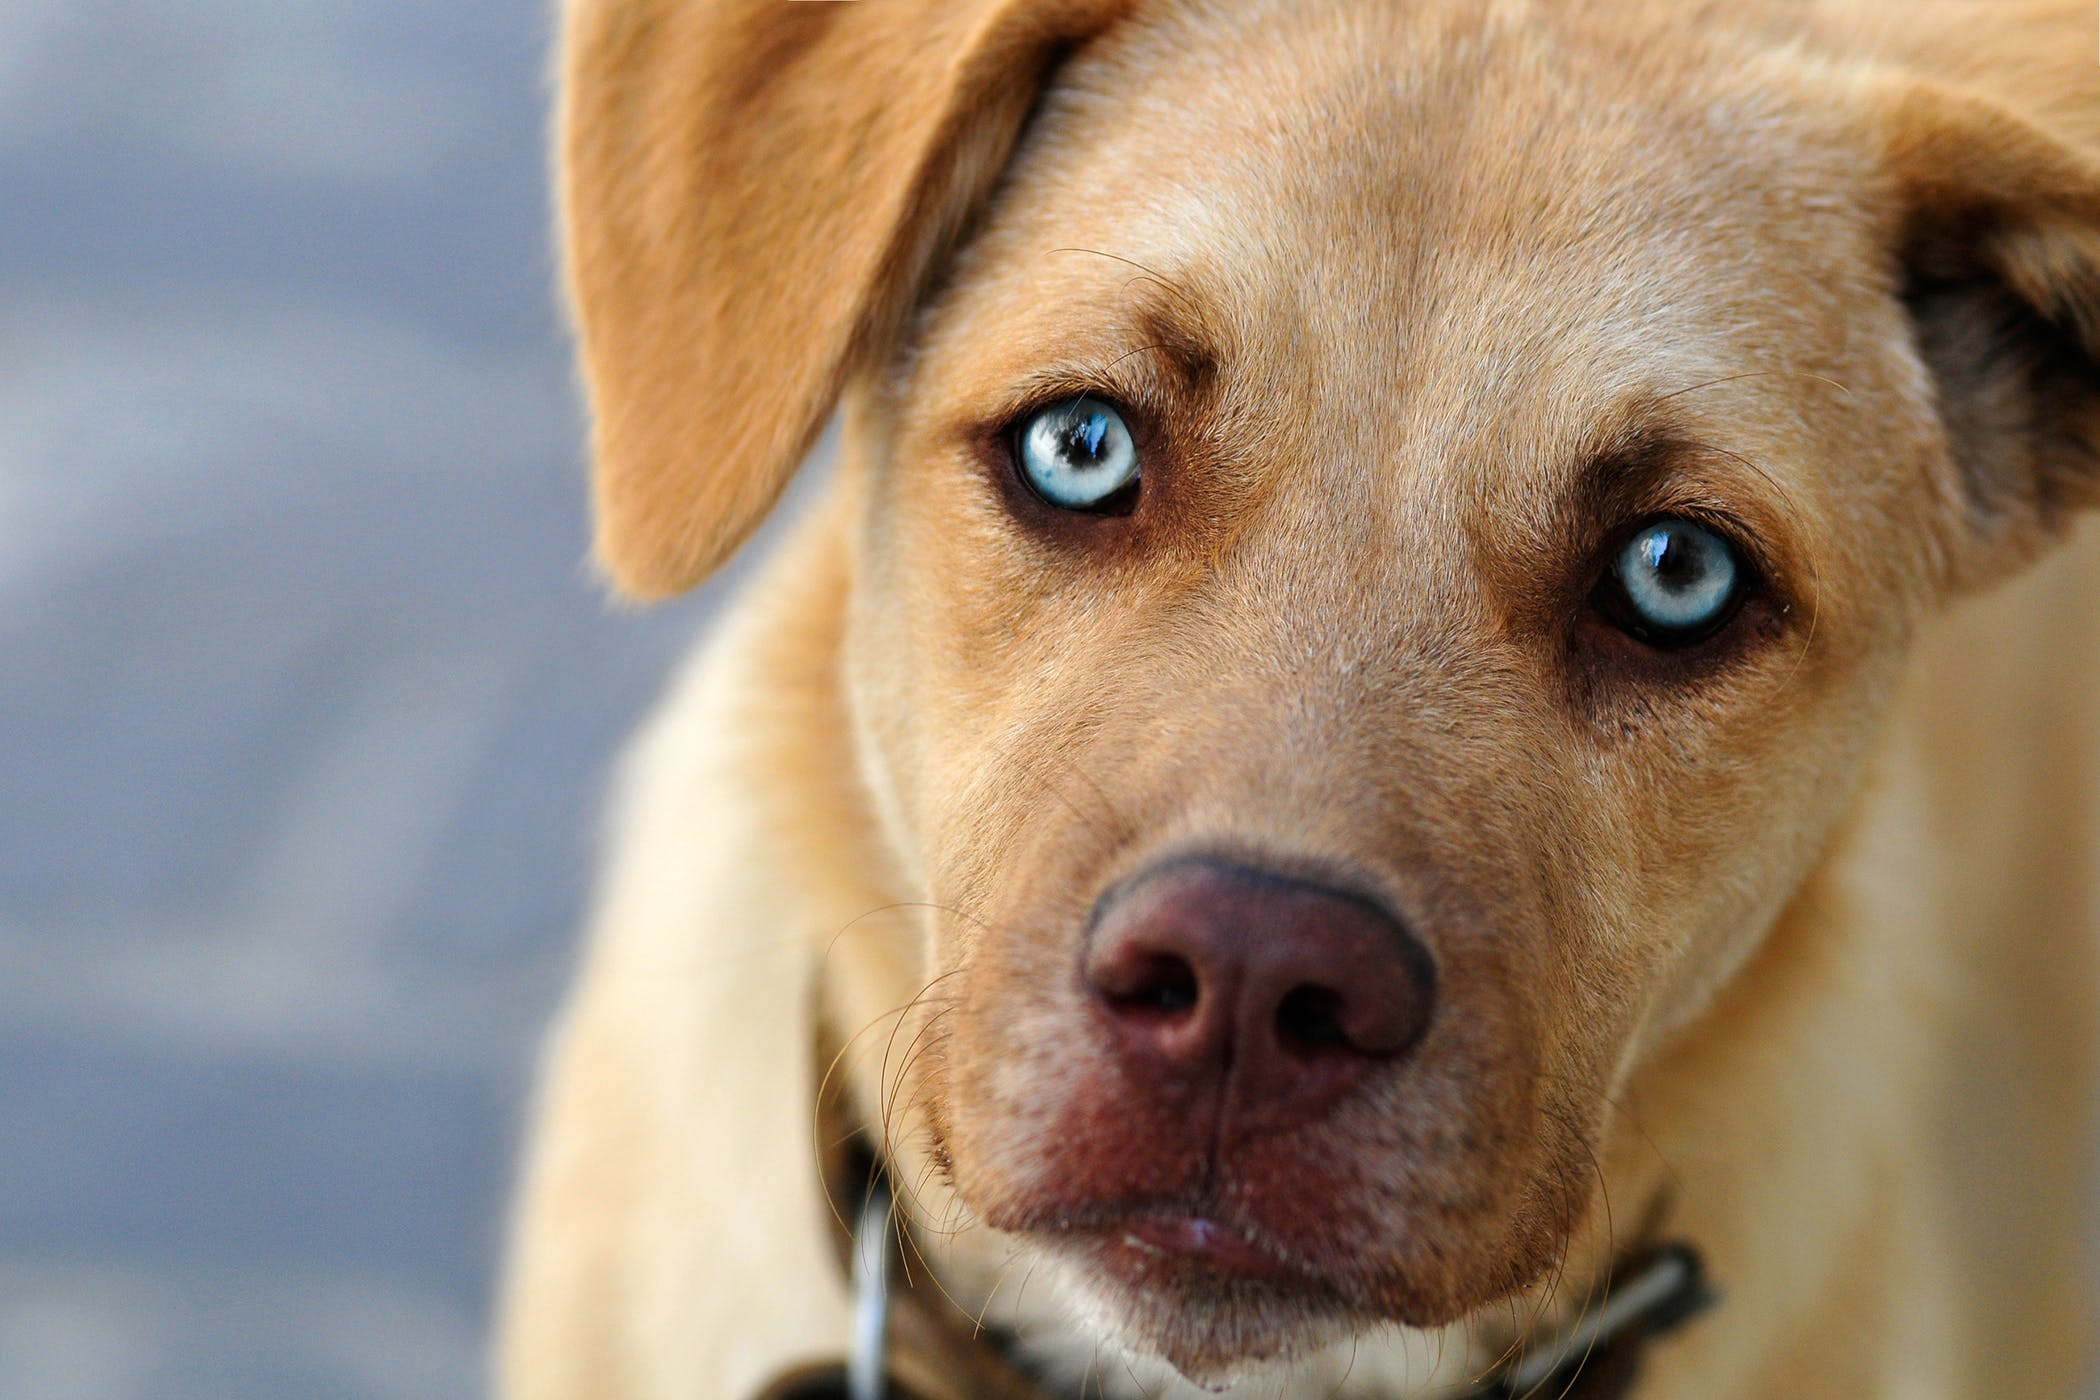 Average Cost Of Eye Surgery For Dogs